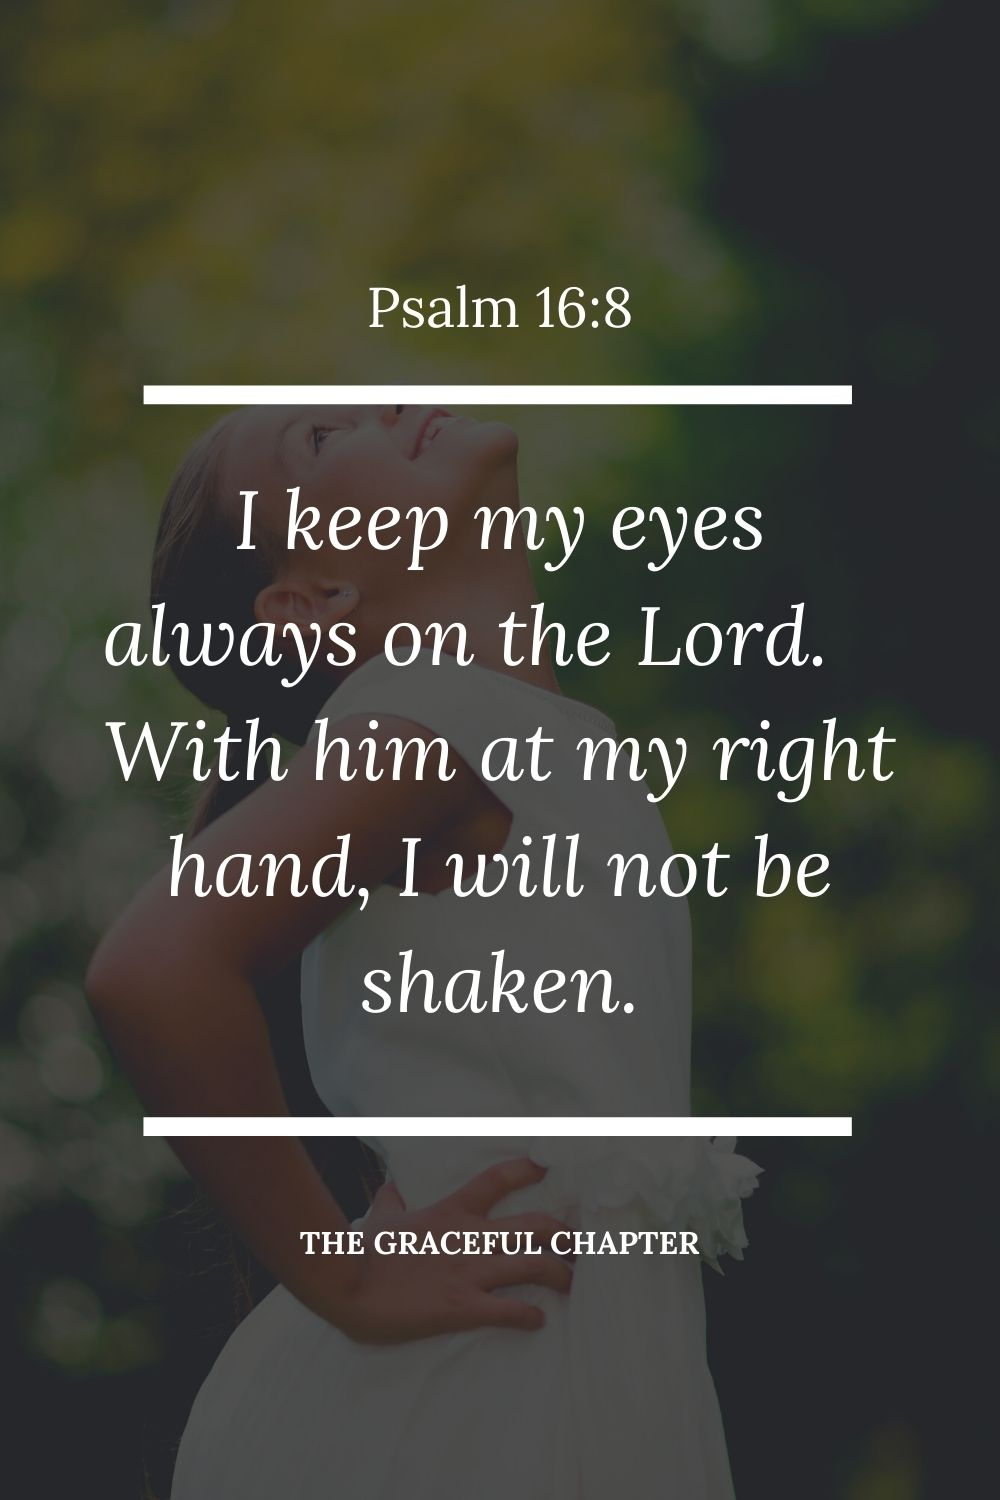 I keep my eyes always on the Lord. With him at my right hand, I will not be shaken. Psalm 16:8